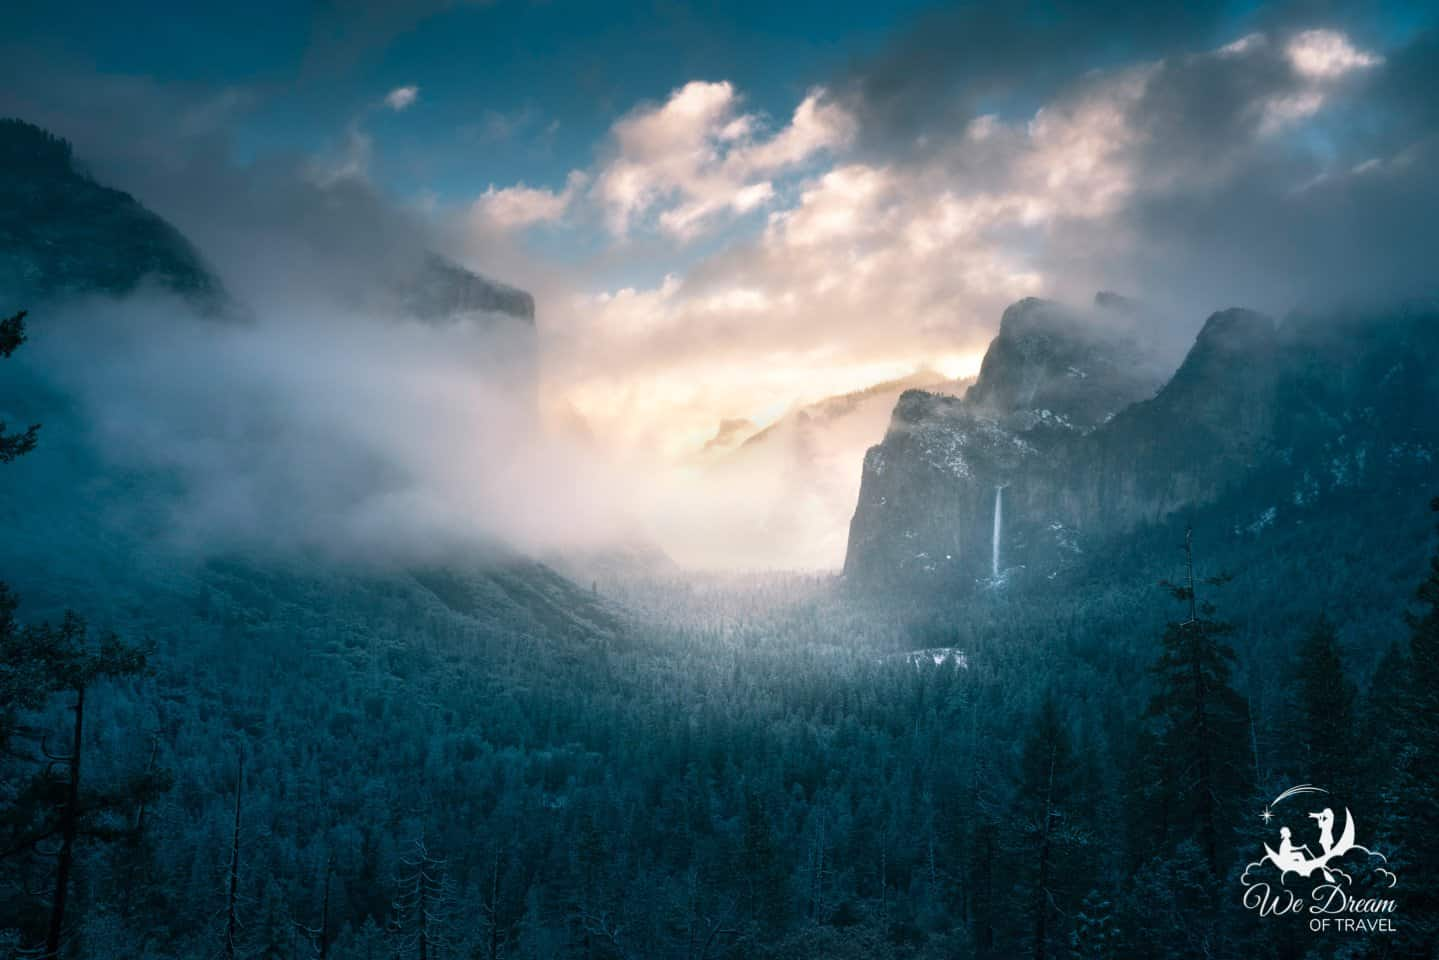 Begin your day in Yosemite by taking in sunrise from Tunnel View.